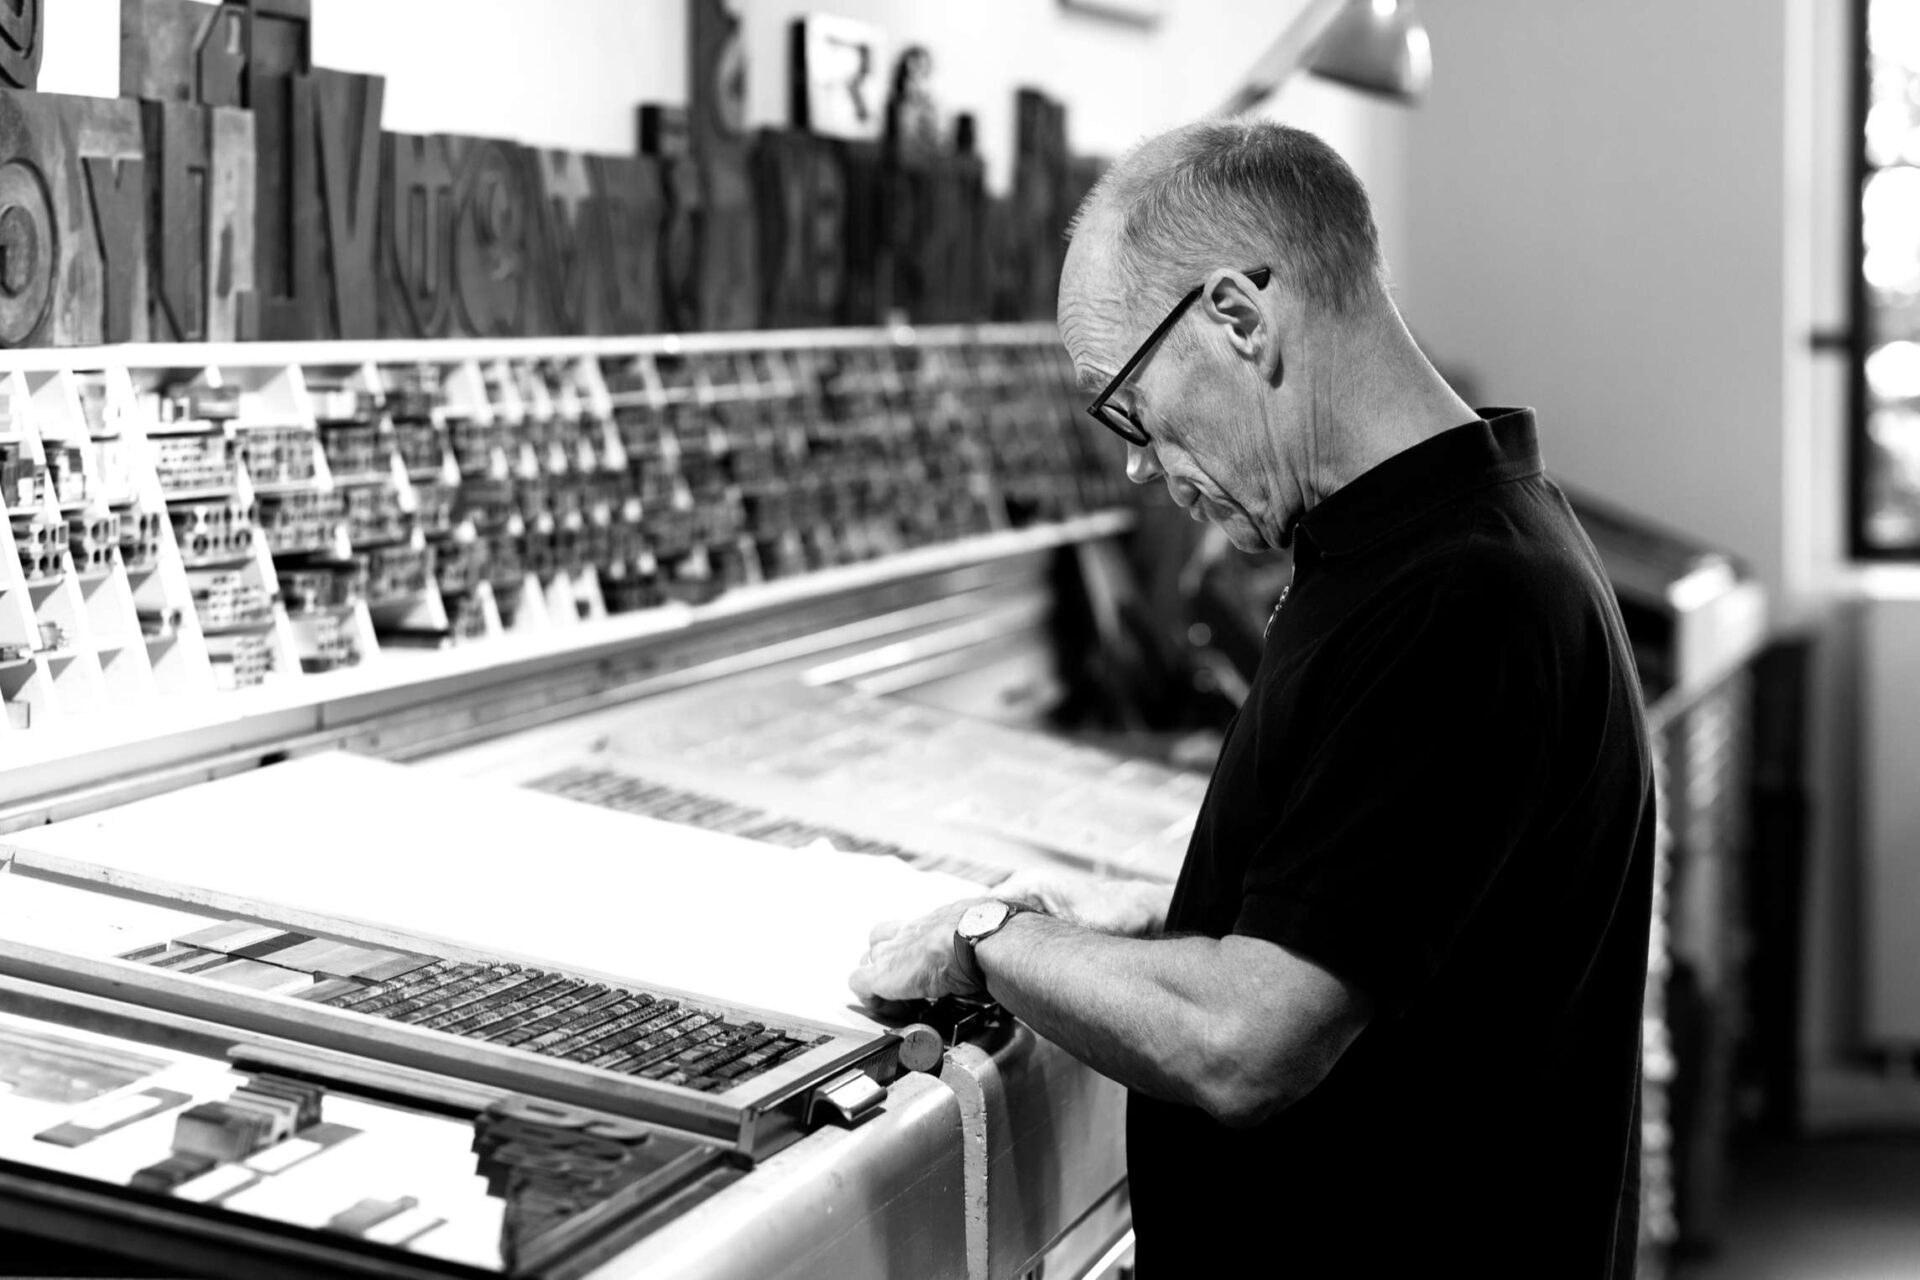 Erik Spiekermann is setting type by hand.